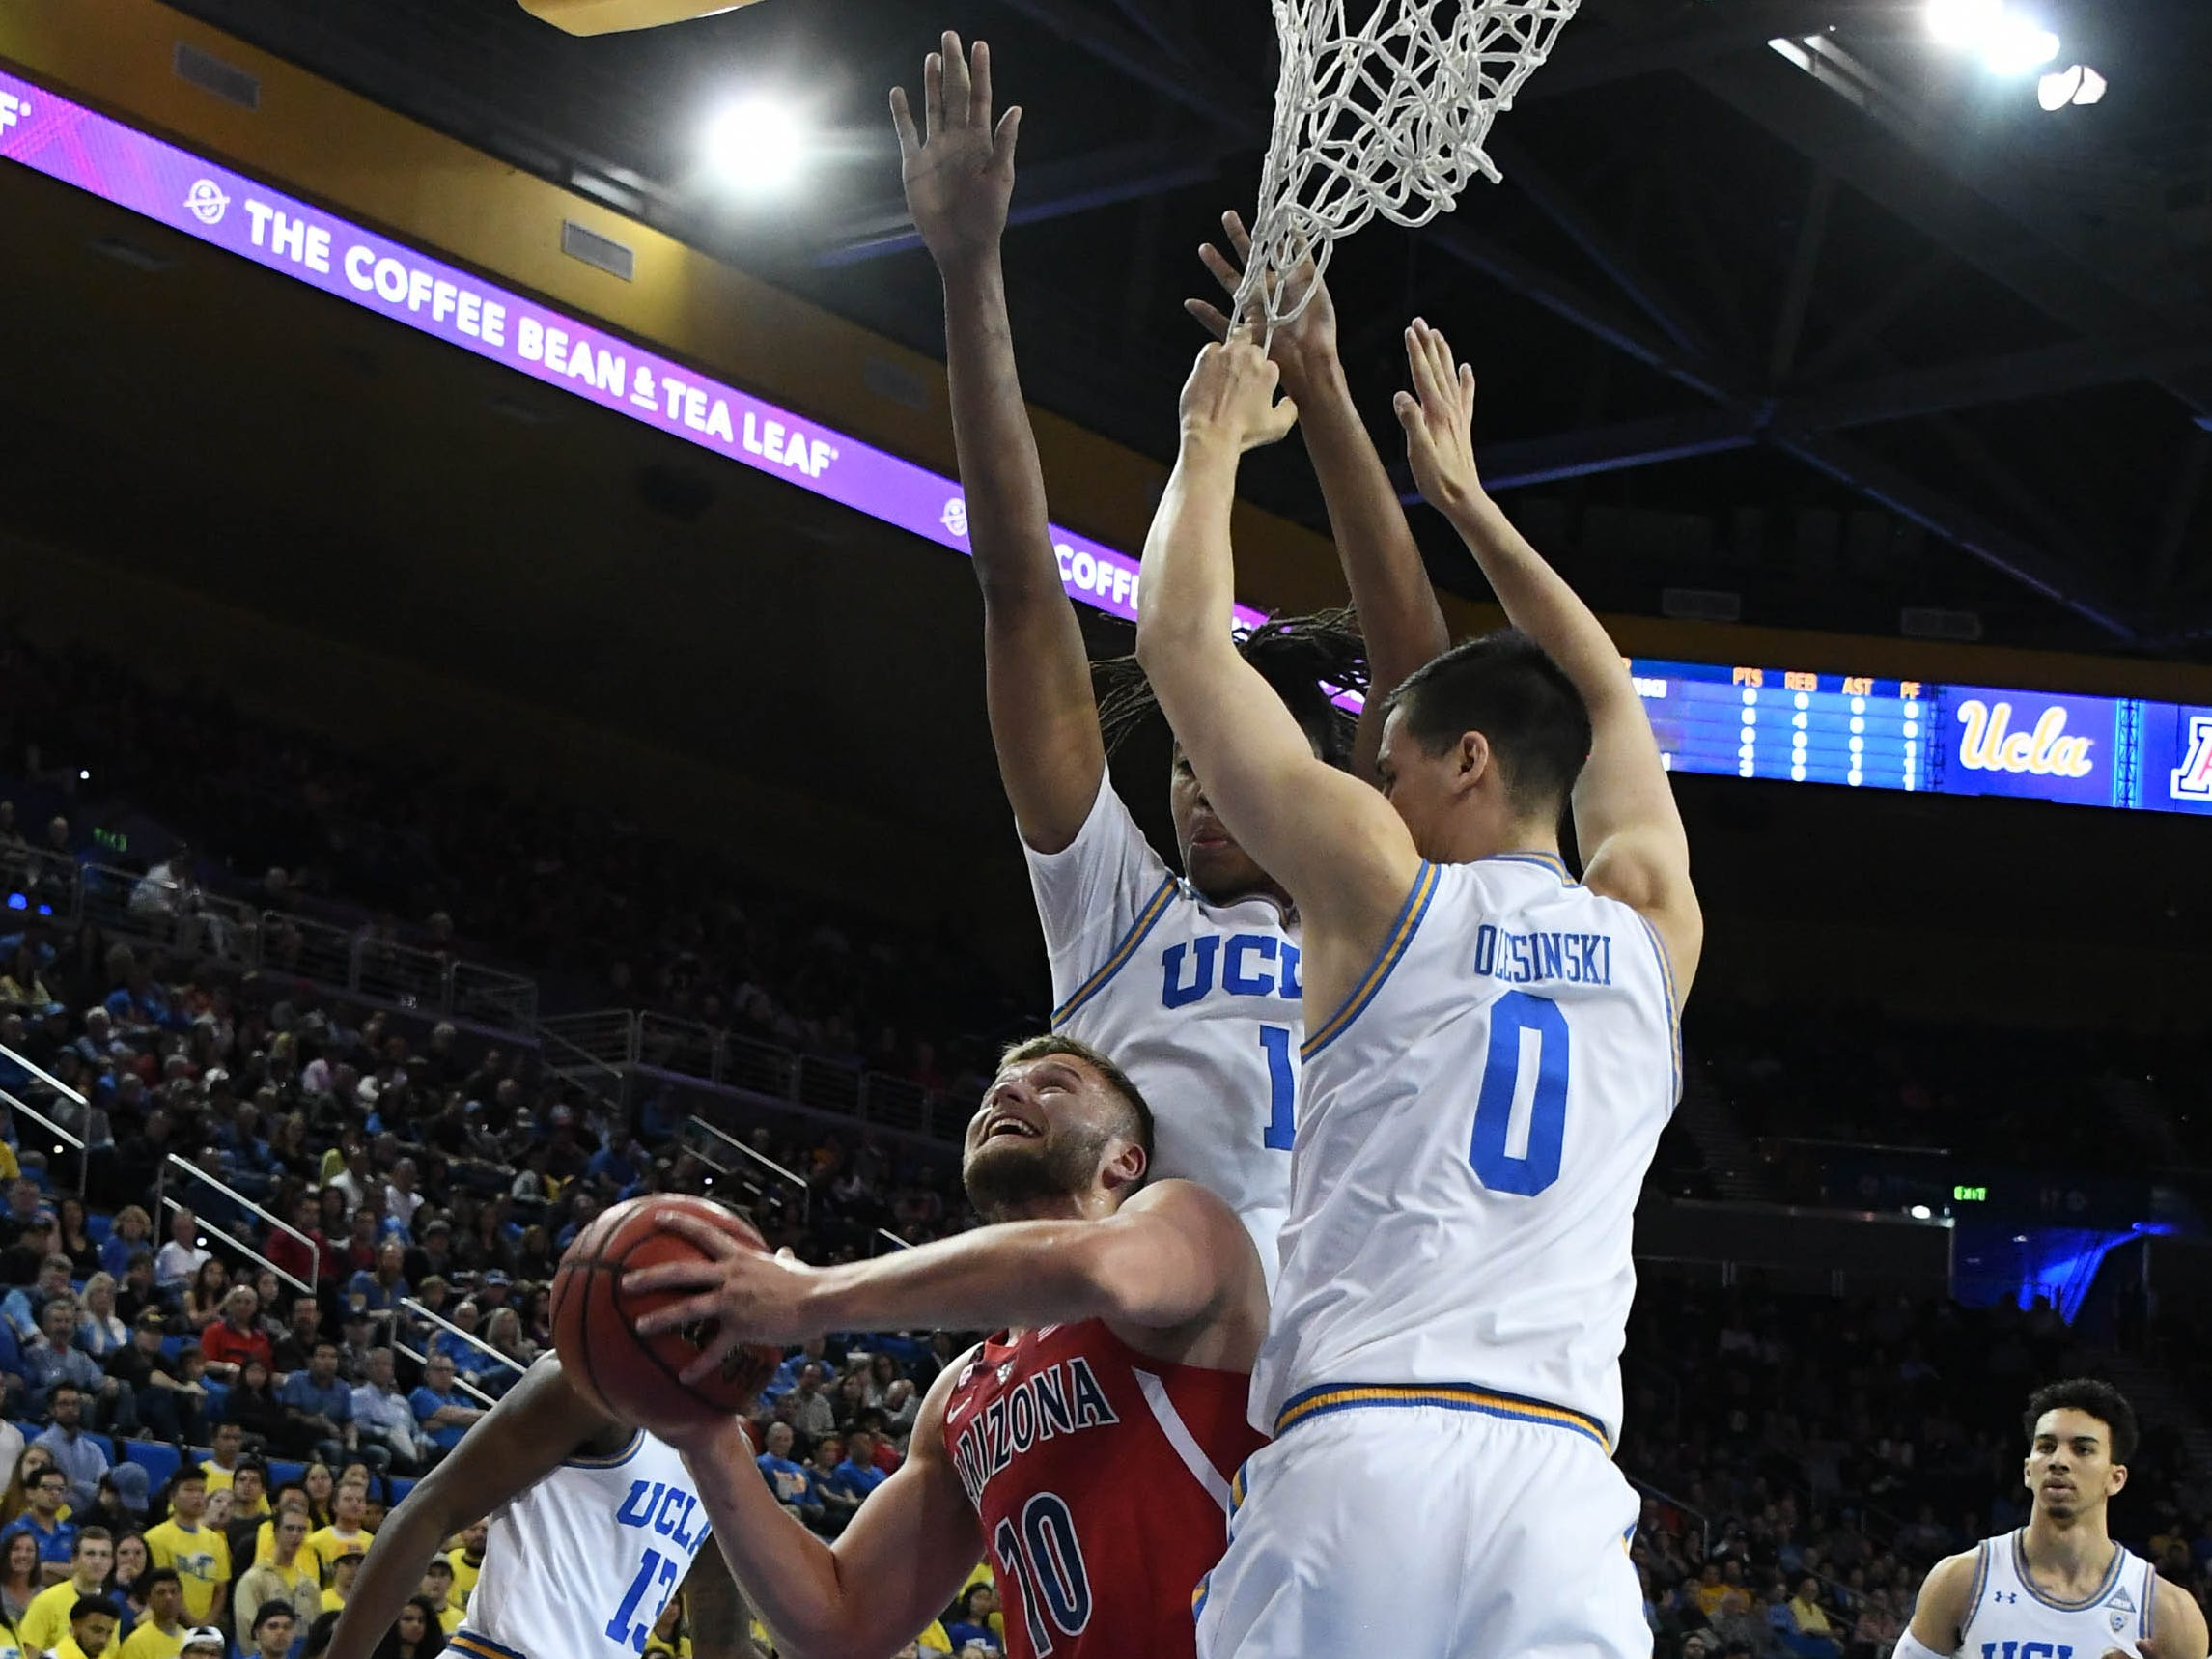 Jan 26, 2019; Los Angeles, CA, USA; Arizona Wildcats forward Ryan Luther (10) shoots between UCLA Bruins forward Alex Olesinski (0) and center Moses Brown (1) in the first half at Pauley Pavilion.